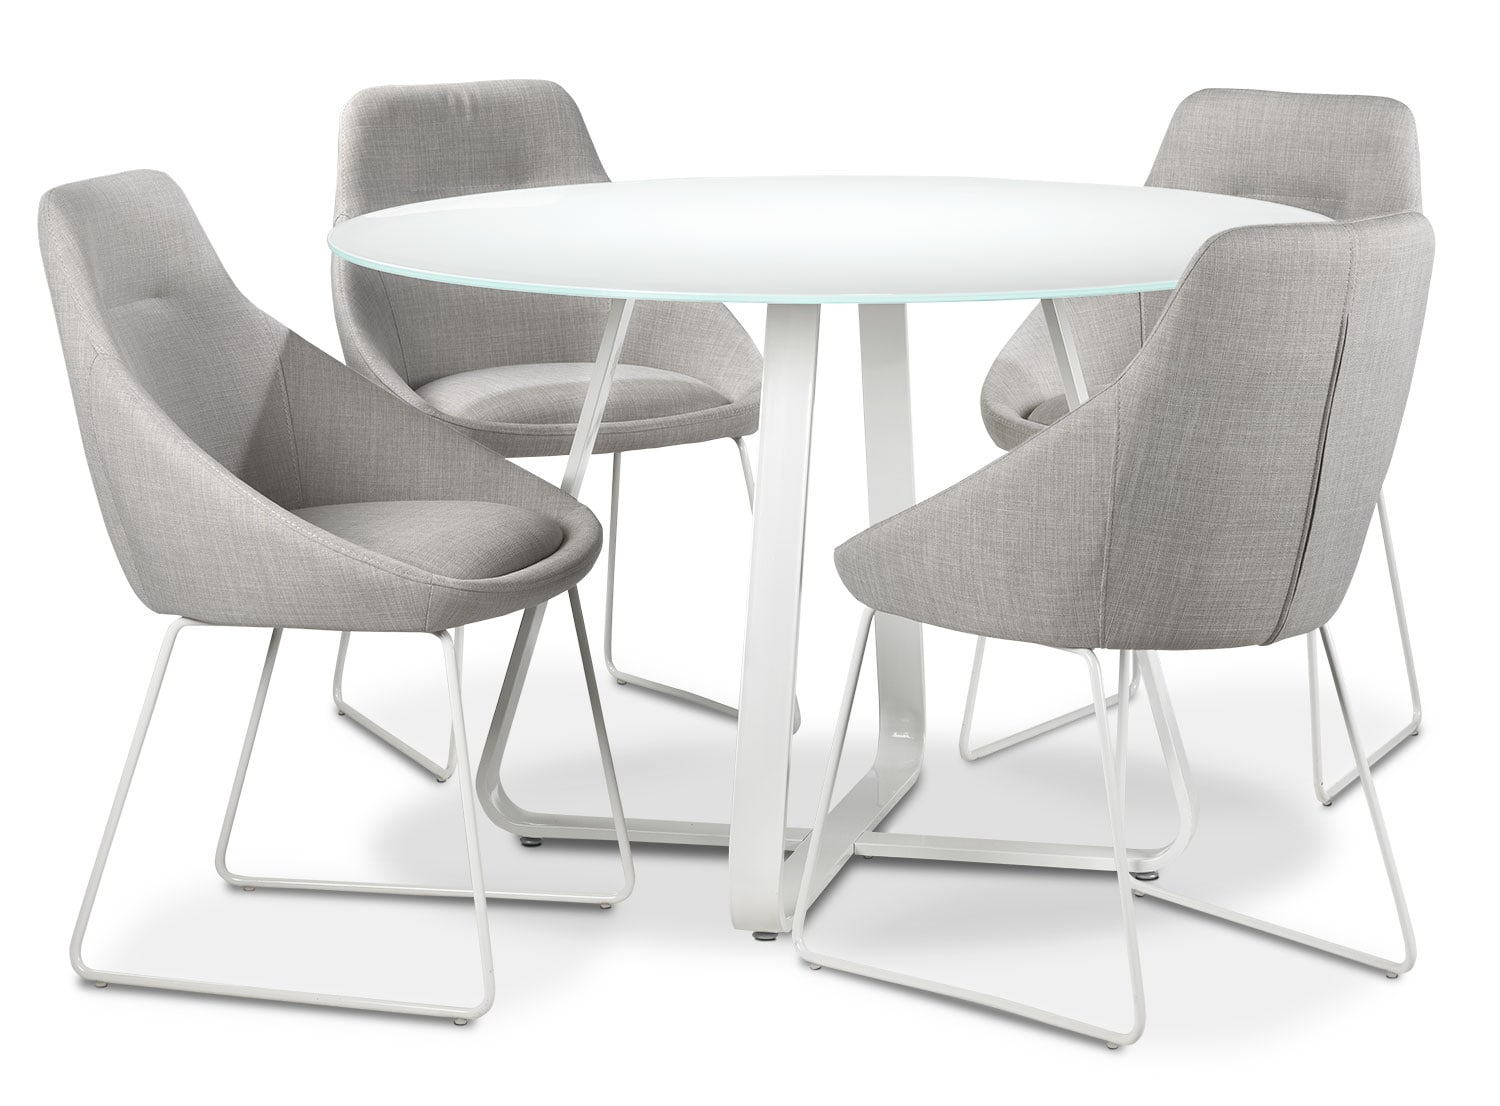 Sunshine 5-Piece Dinette Set - Grey